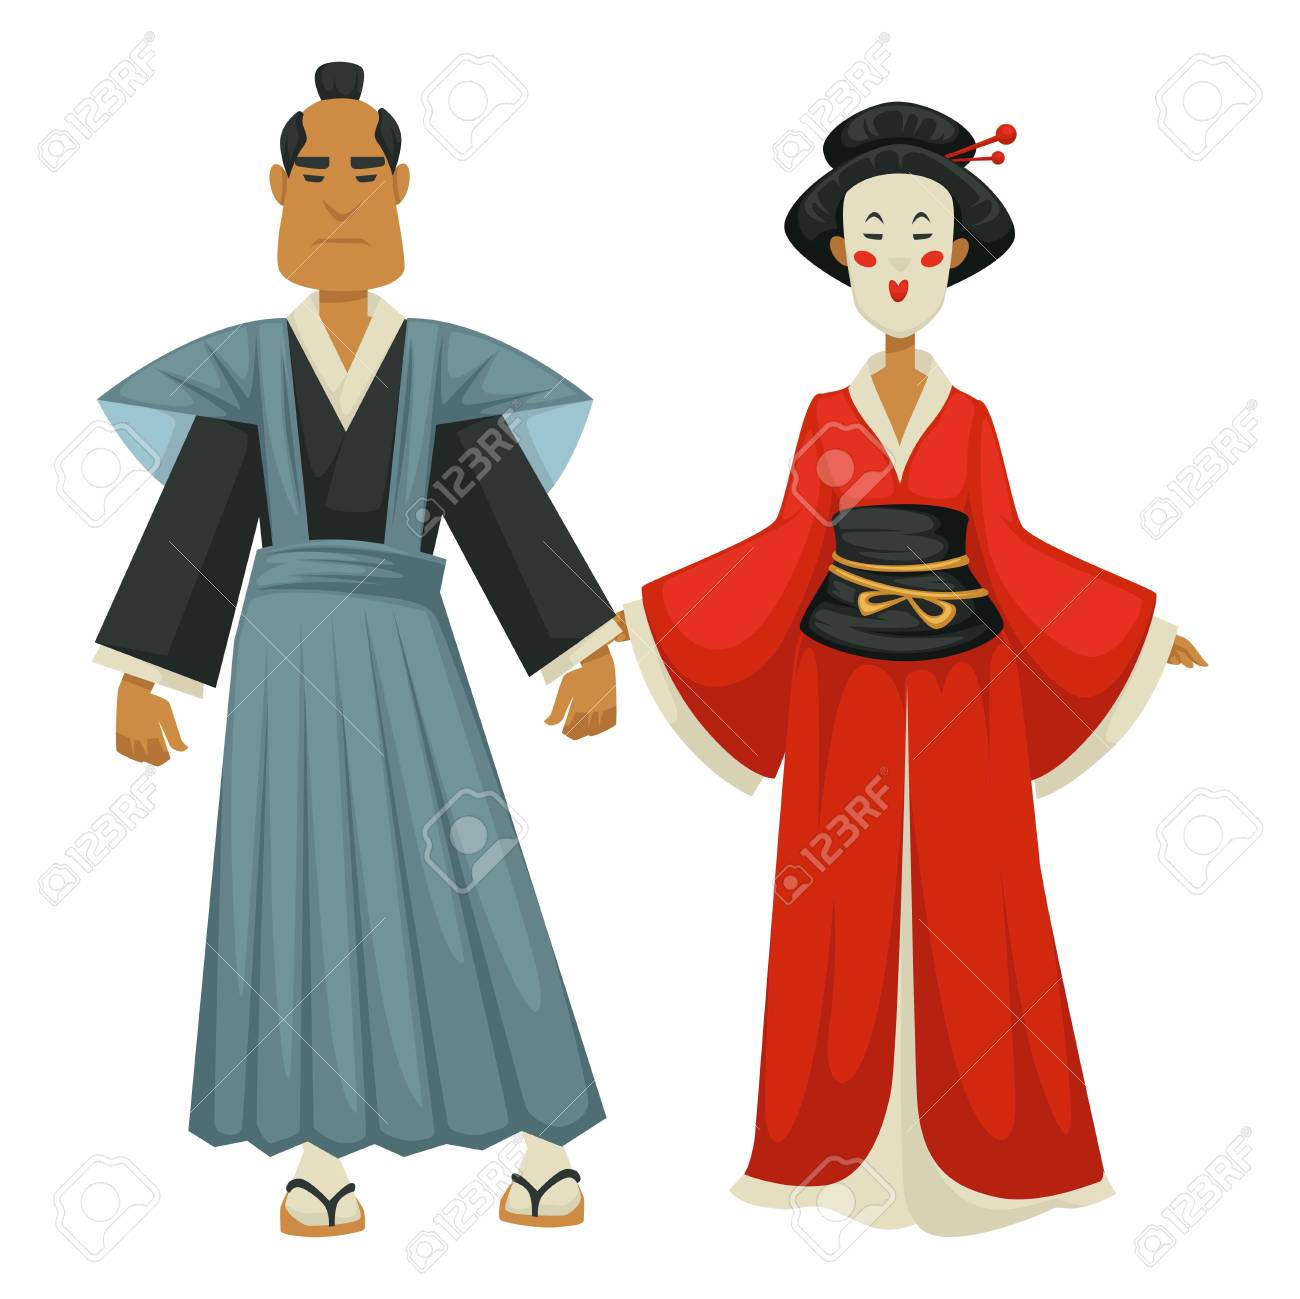 Samurai And Geisha Japanese Man And Woman In Traditional Clothing Royalty Free Cliparts Vectors And Stock Illustration Image 124973395